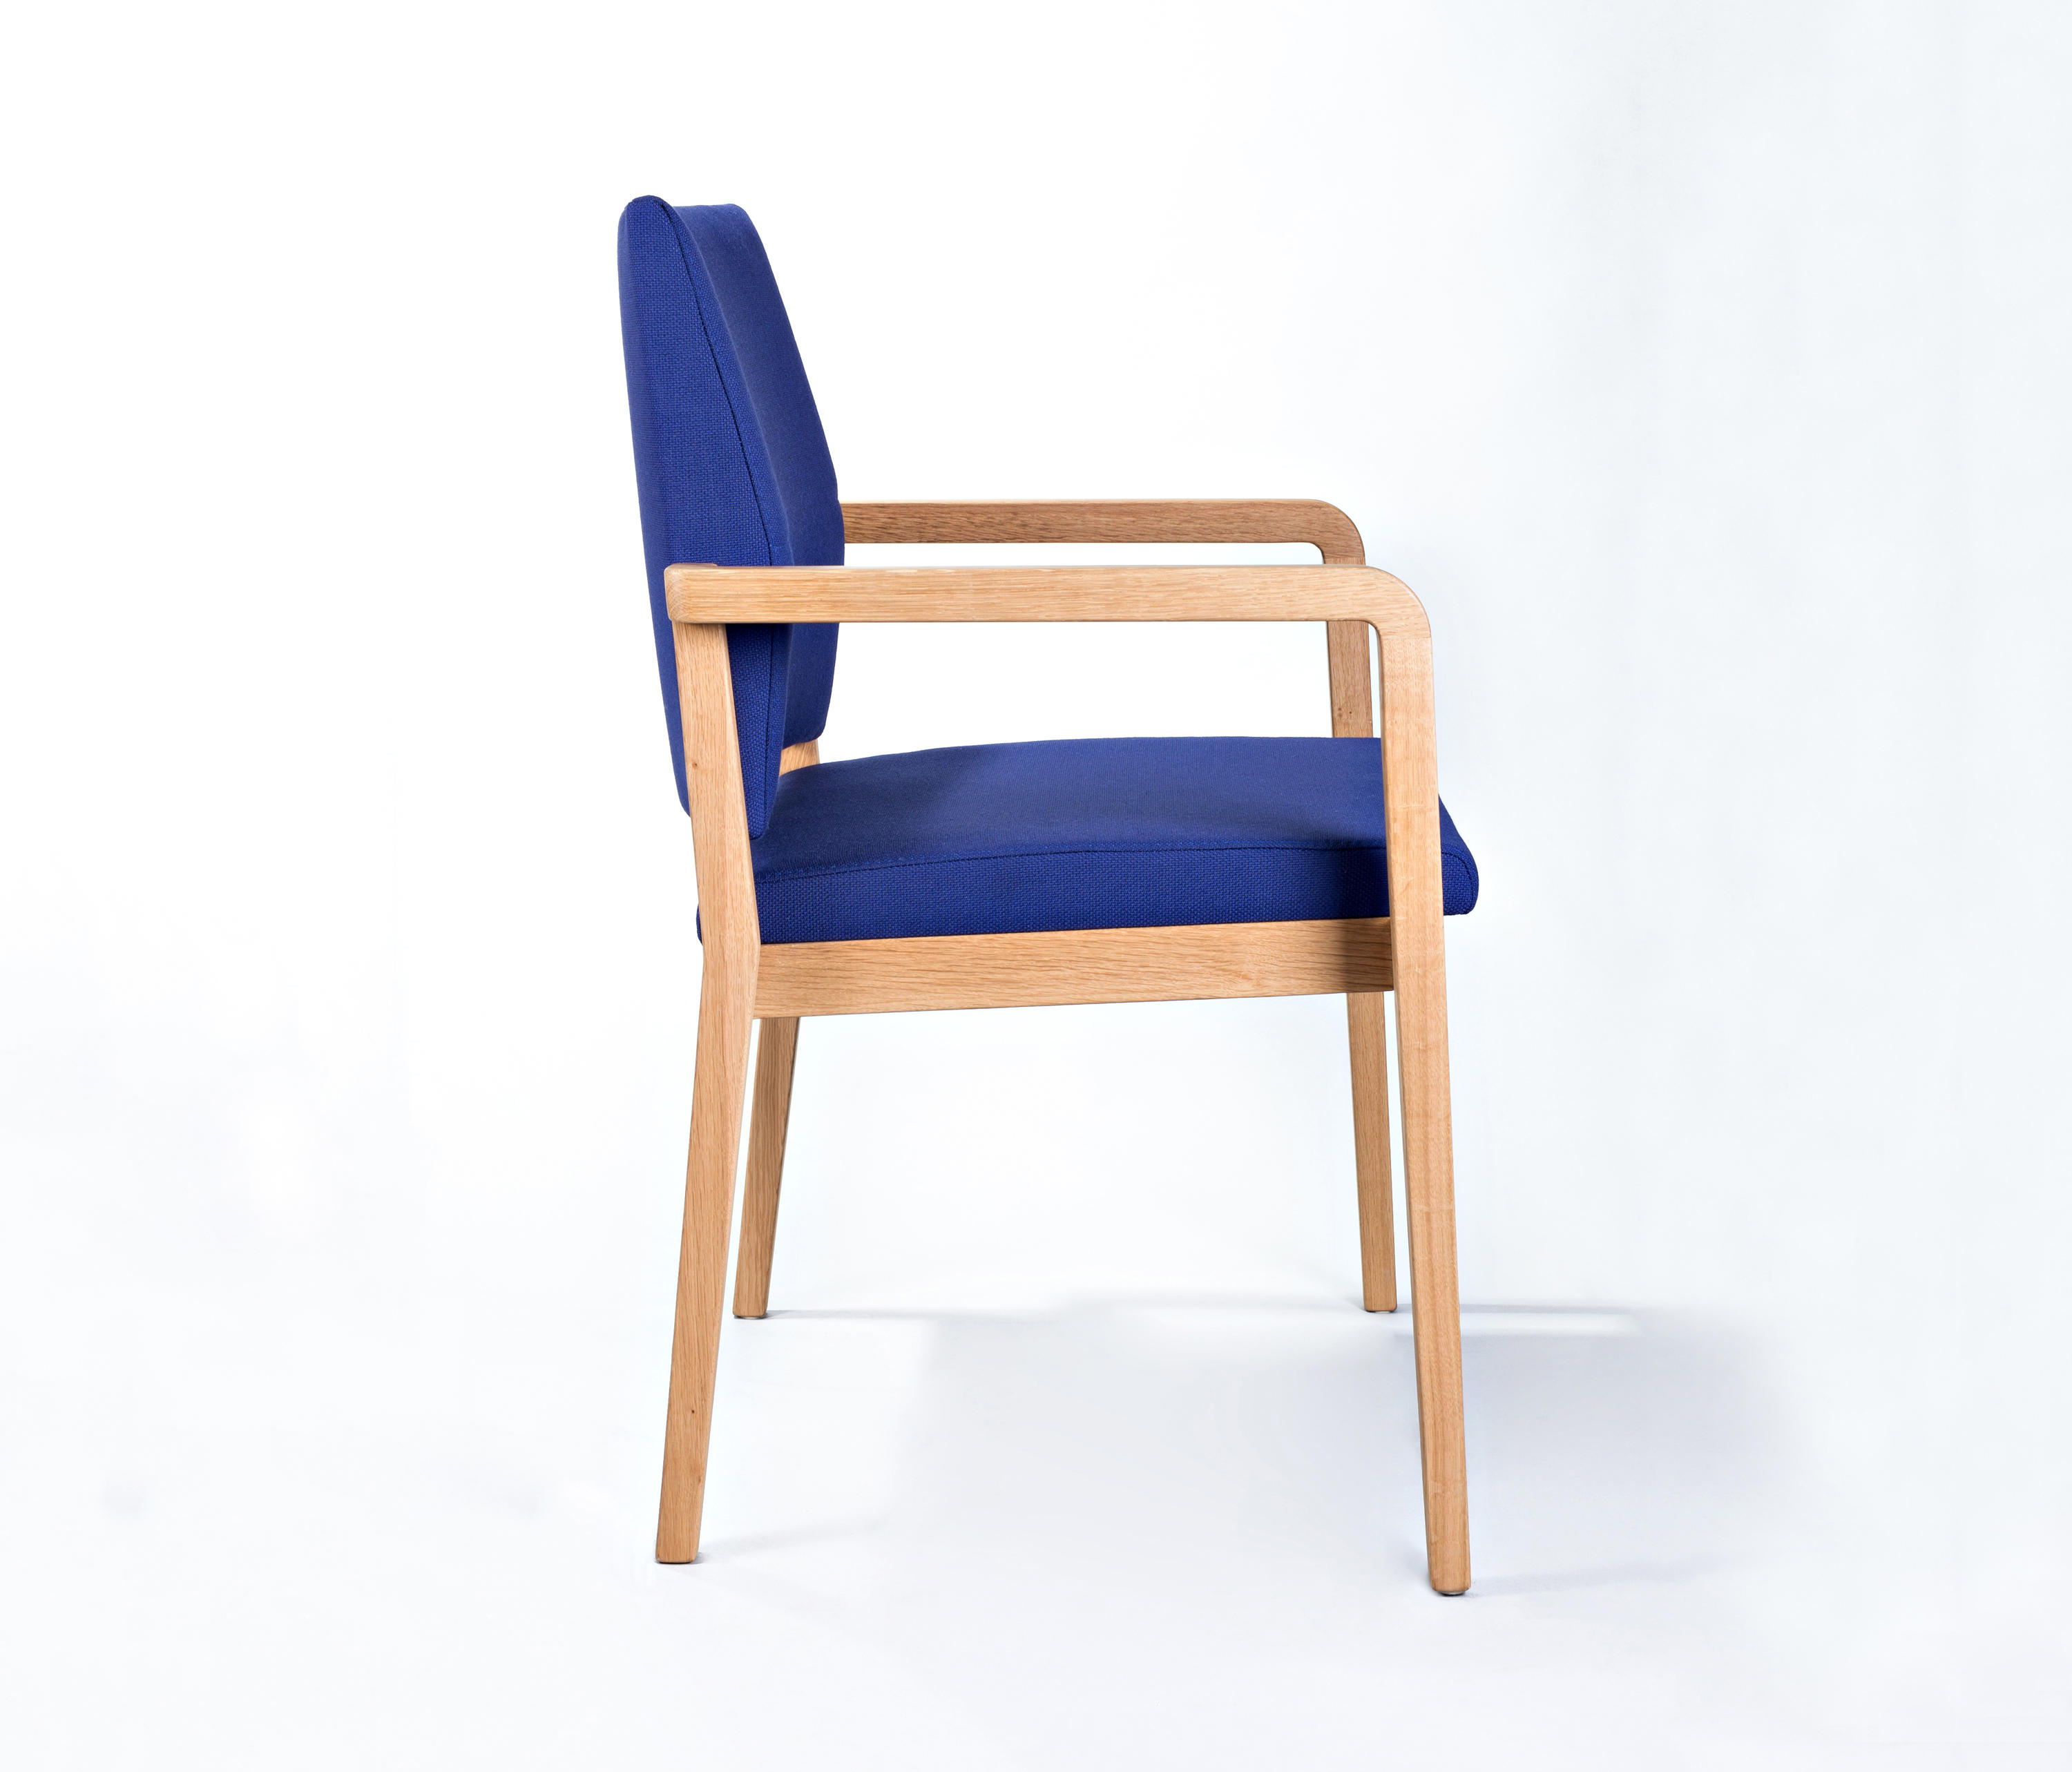 MENDEL CHAIR Multipurpose chairs from AMOS DESIGN